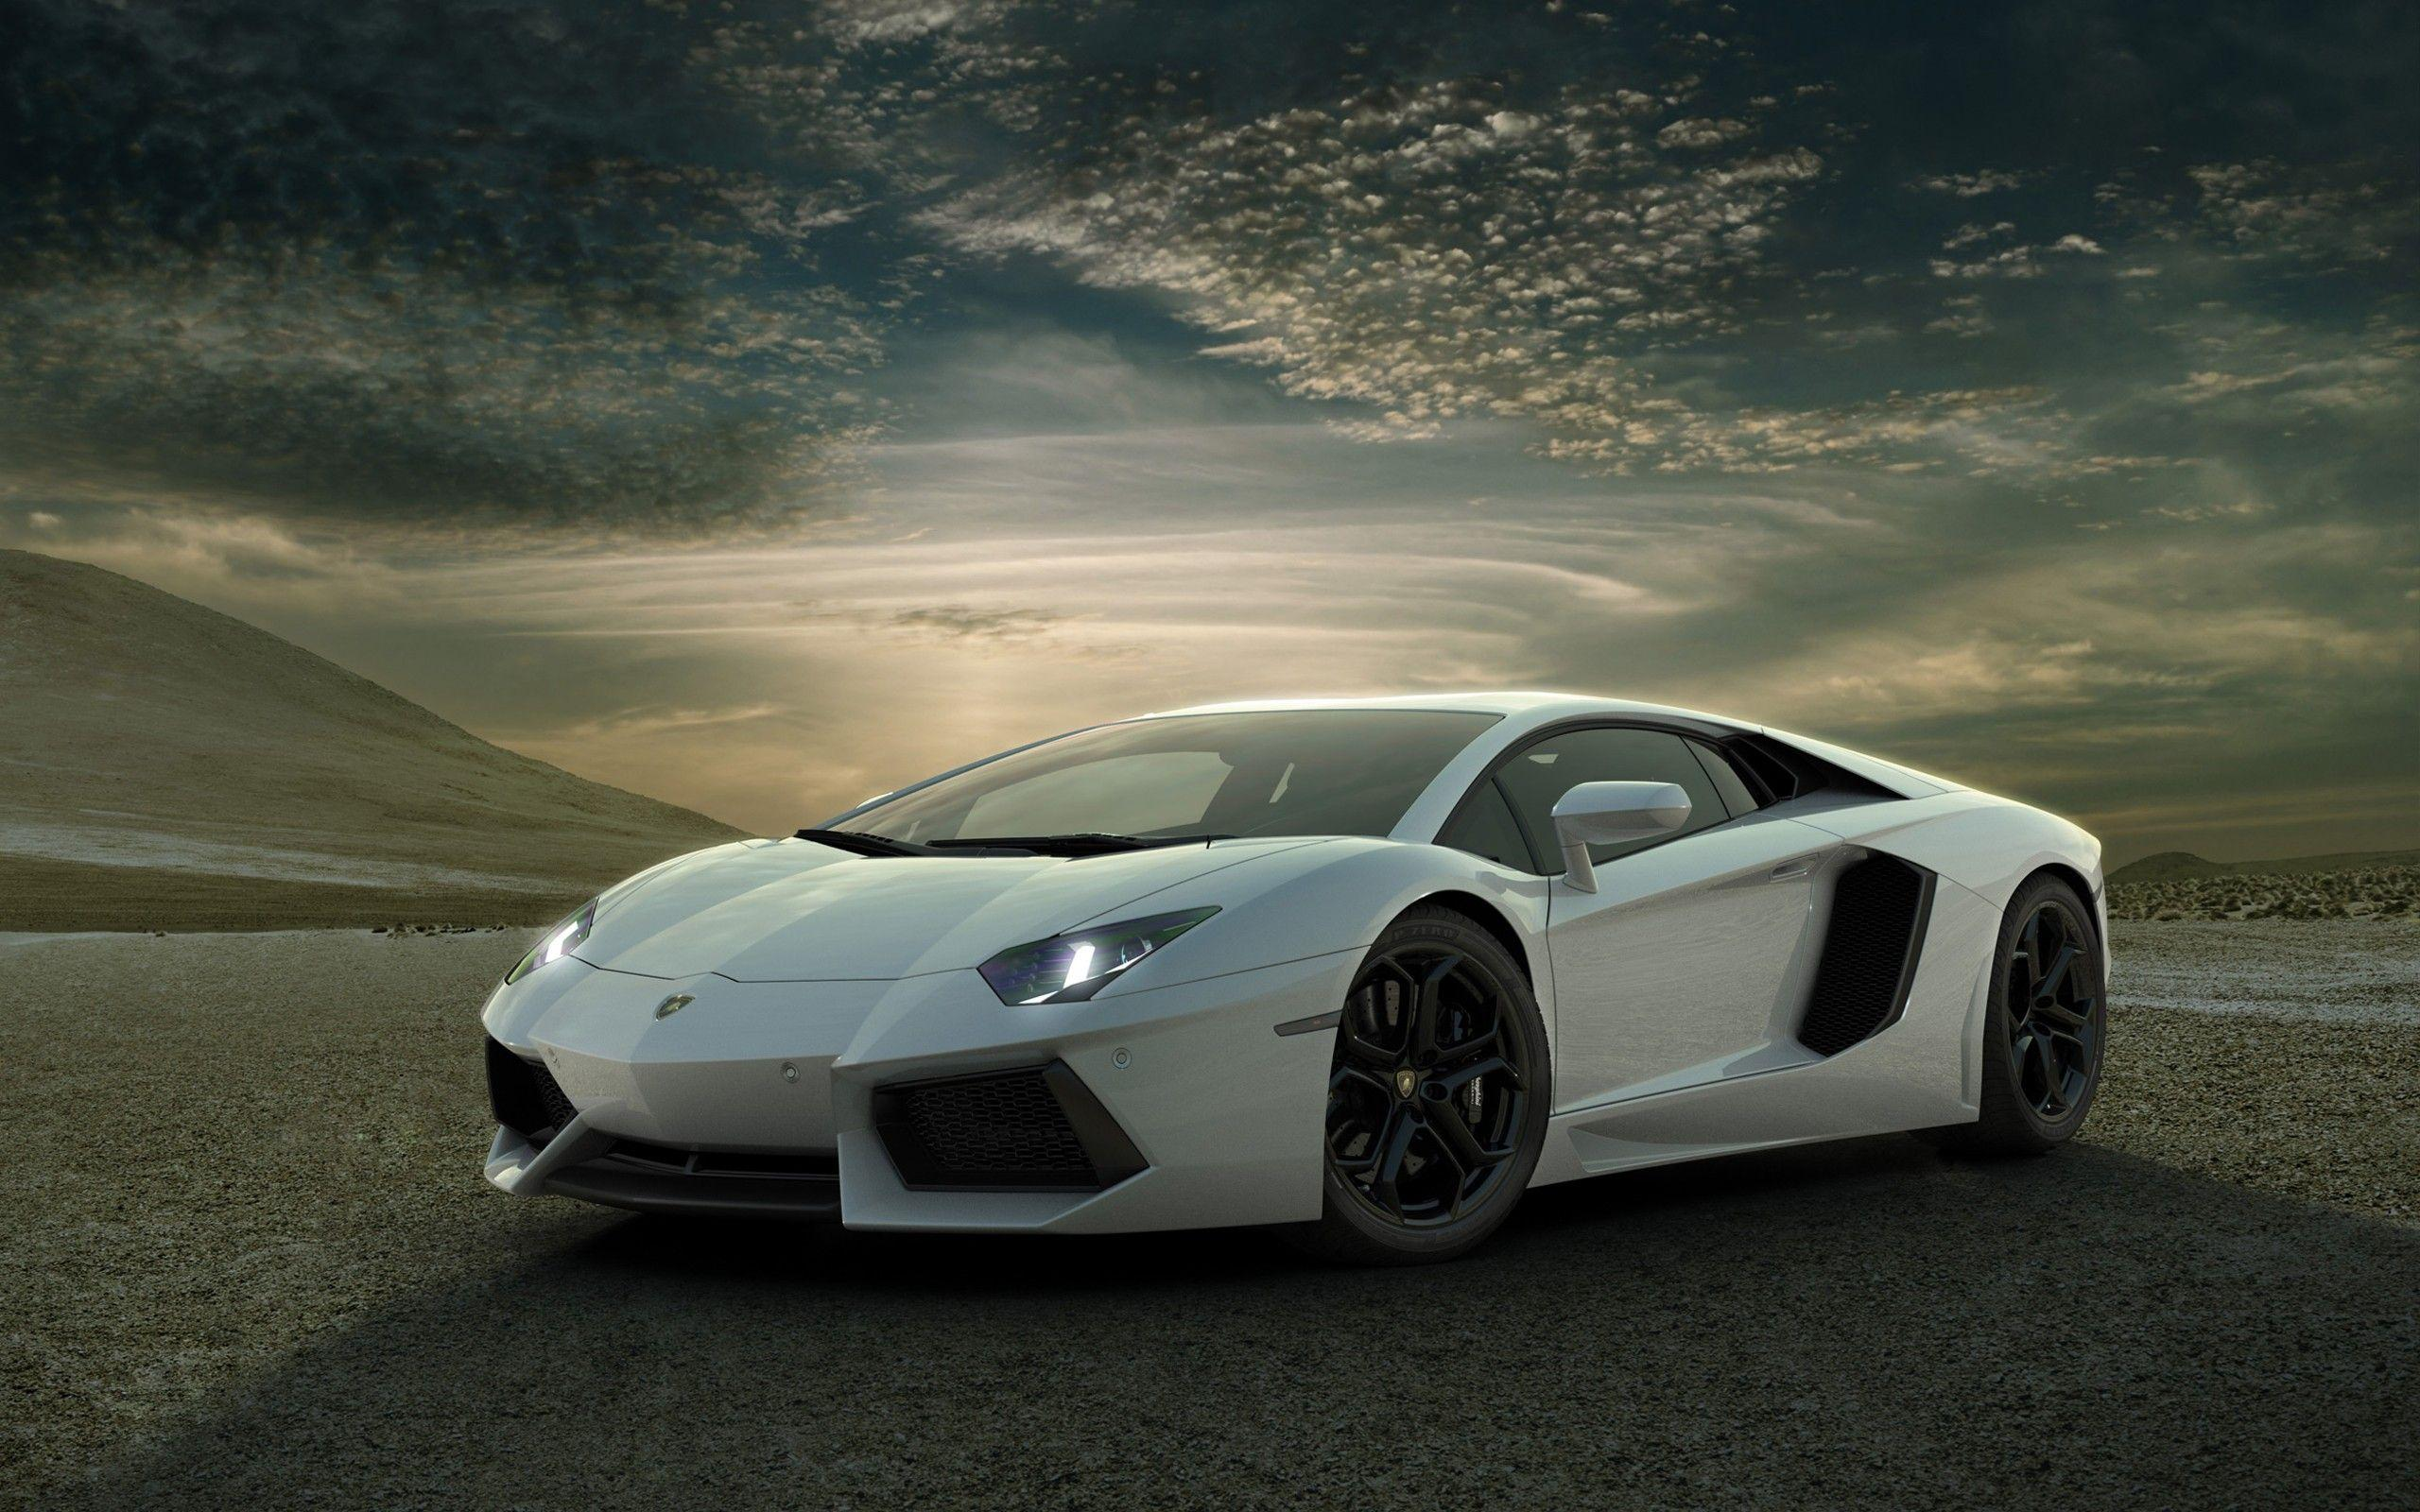 Lamborghini Reventon HD Wallpapers - Wallpaper Cave